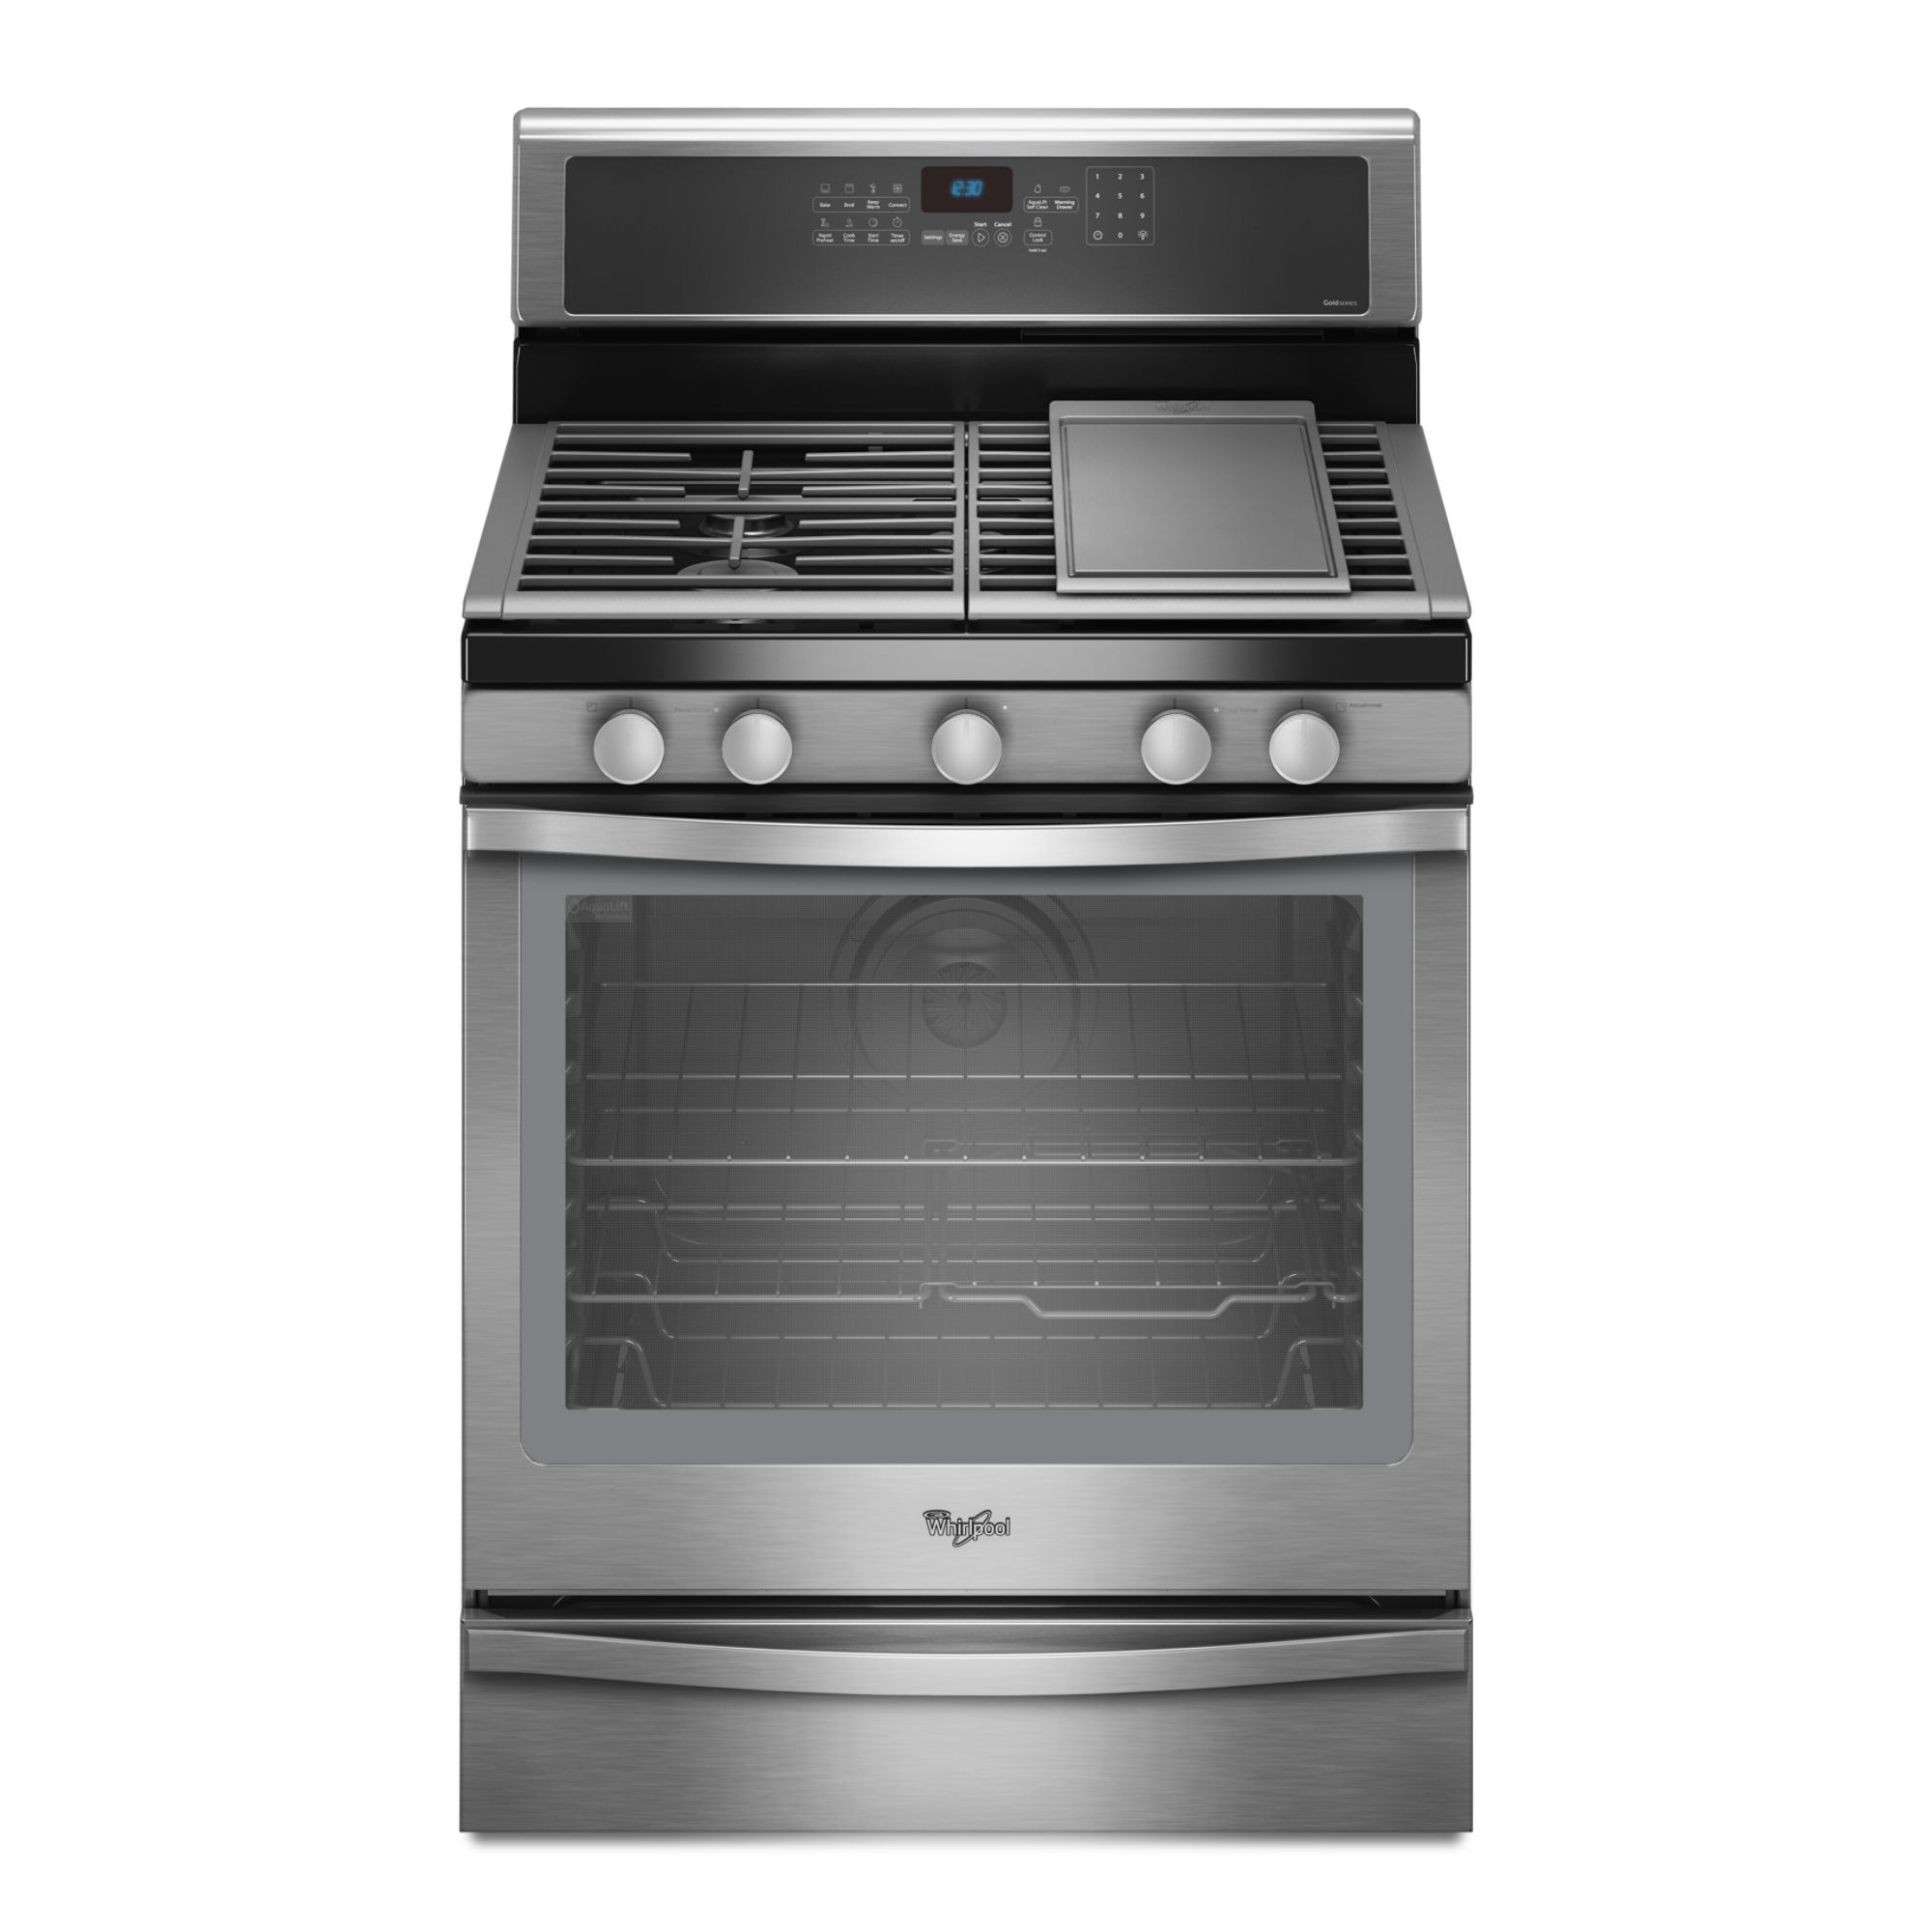 Whirlpool WFG720H0AS 5.8 cu. ft.  Freestanding Gas Range w/ True Convection - Stainless Steel